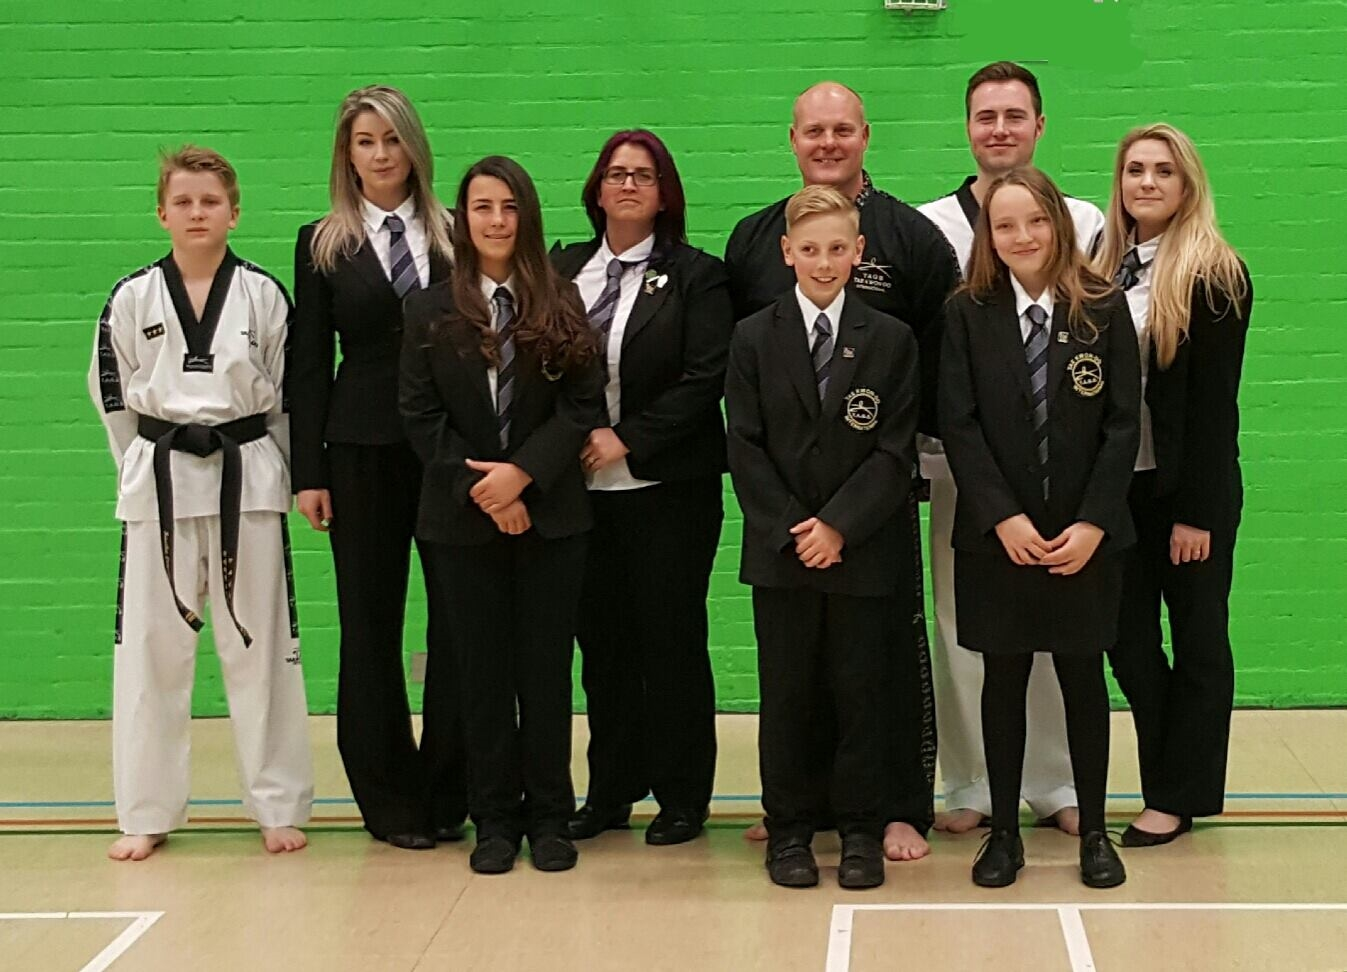 martialarts4fun take won do tag sport south devon